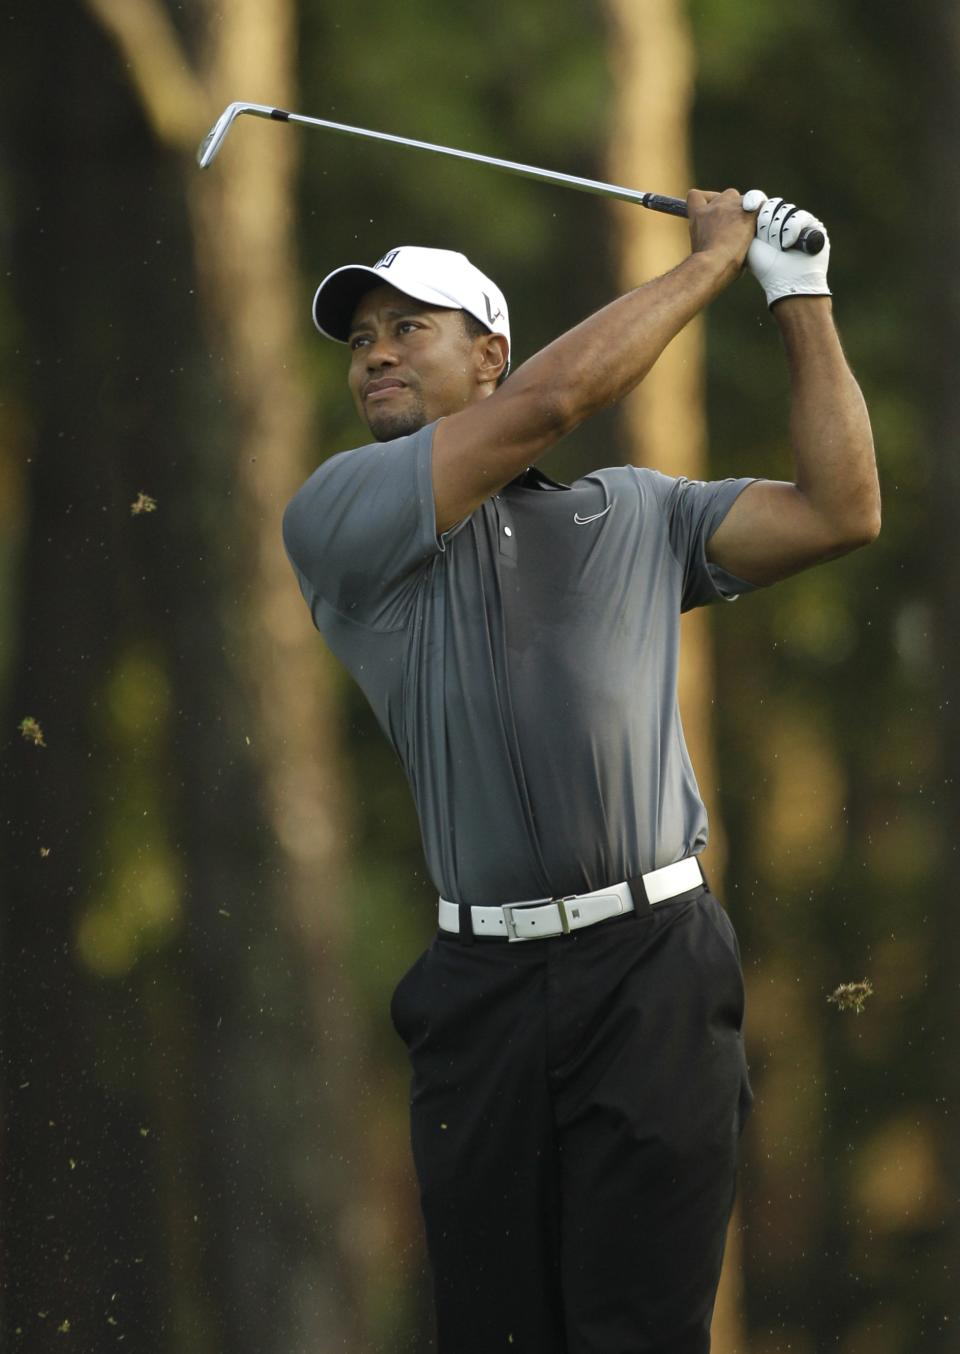 Tiger Woods hits his shot on the first fairway during the pro-am of the Wells Fargo Championship golf tournament at Quail Hollow Club in Charlotte, N.C., Wednesday, May 2, 2012. (AP Photo/Chuck Burton)